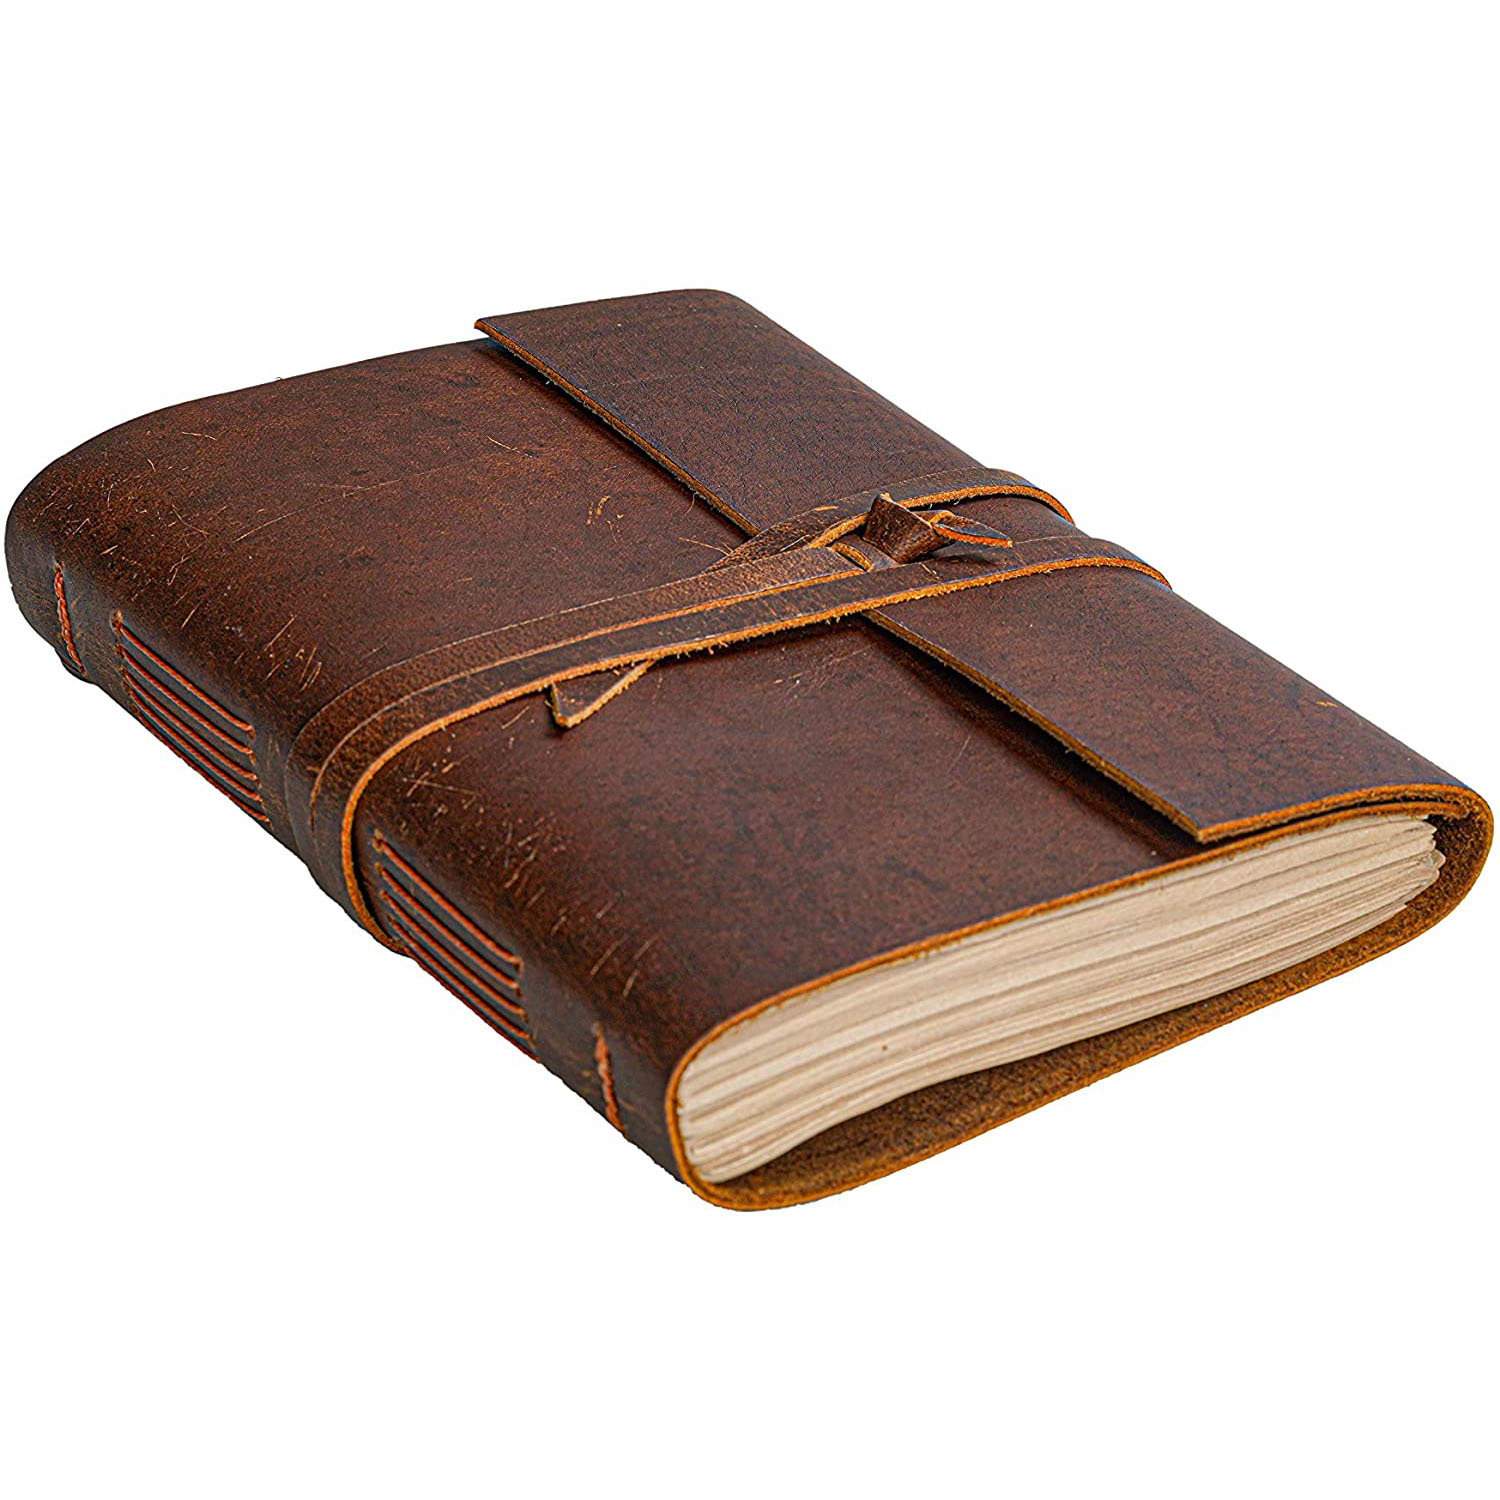 hlc Leather Journal Notebook